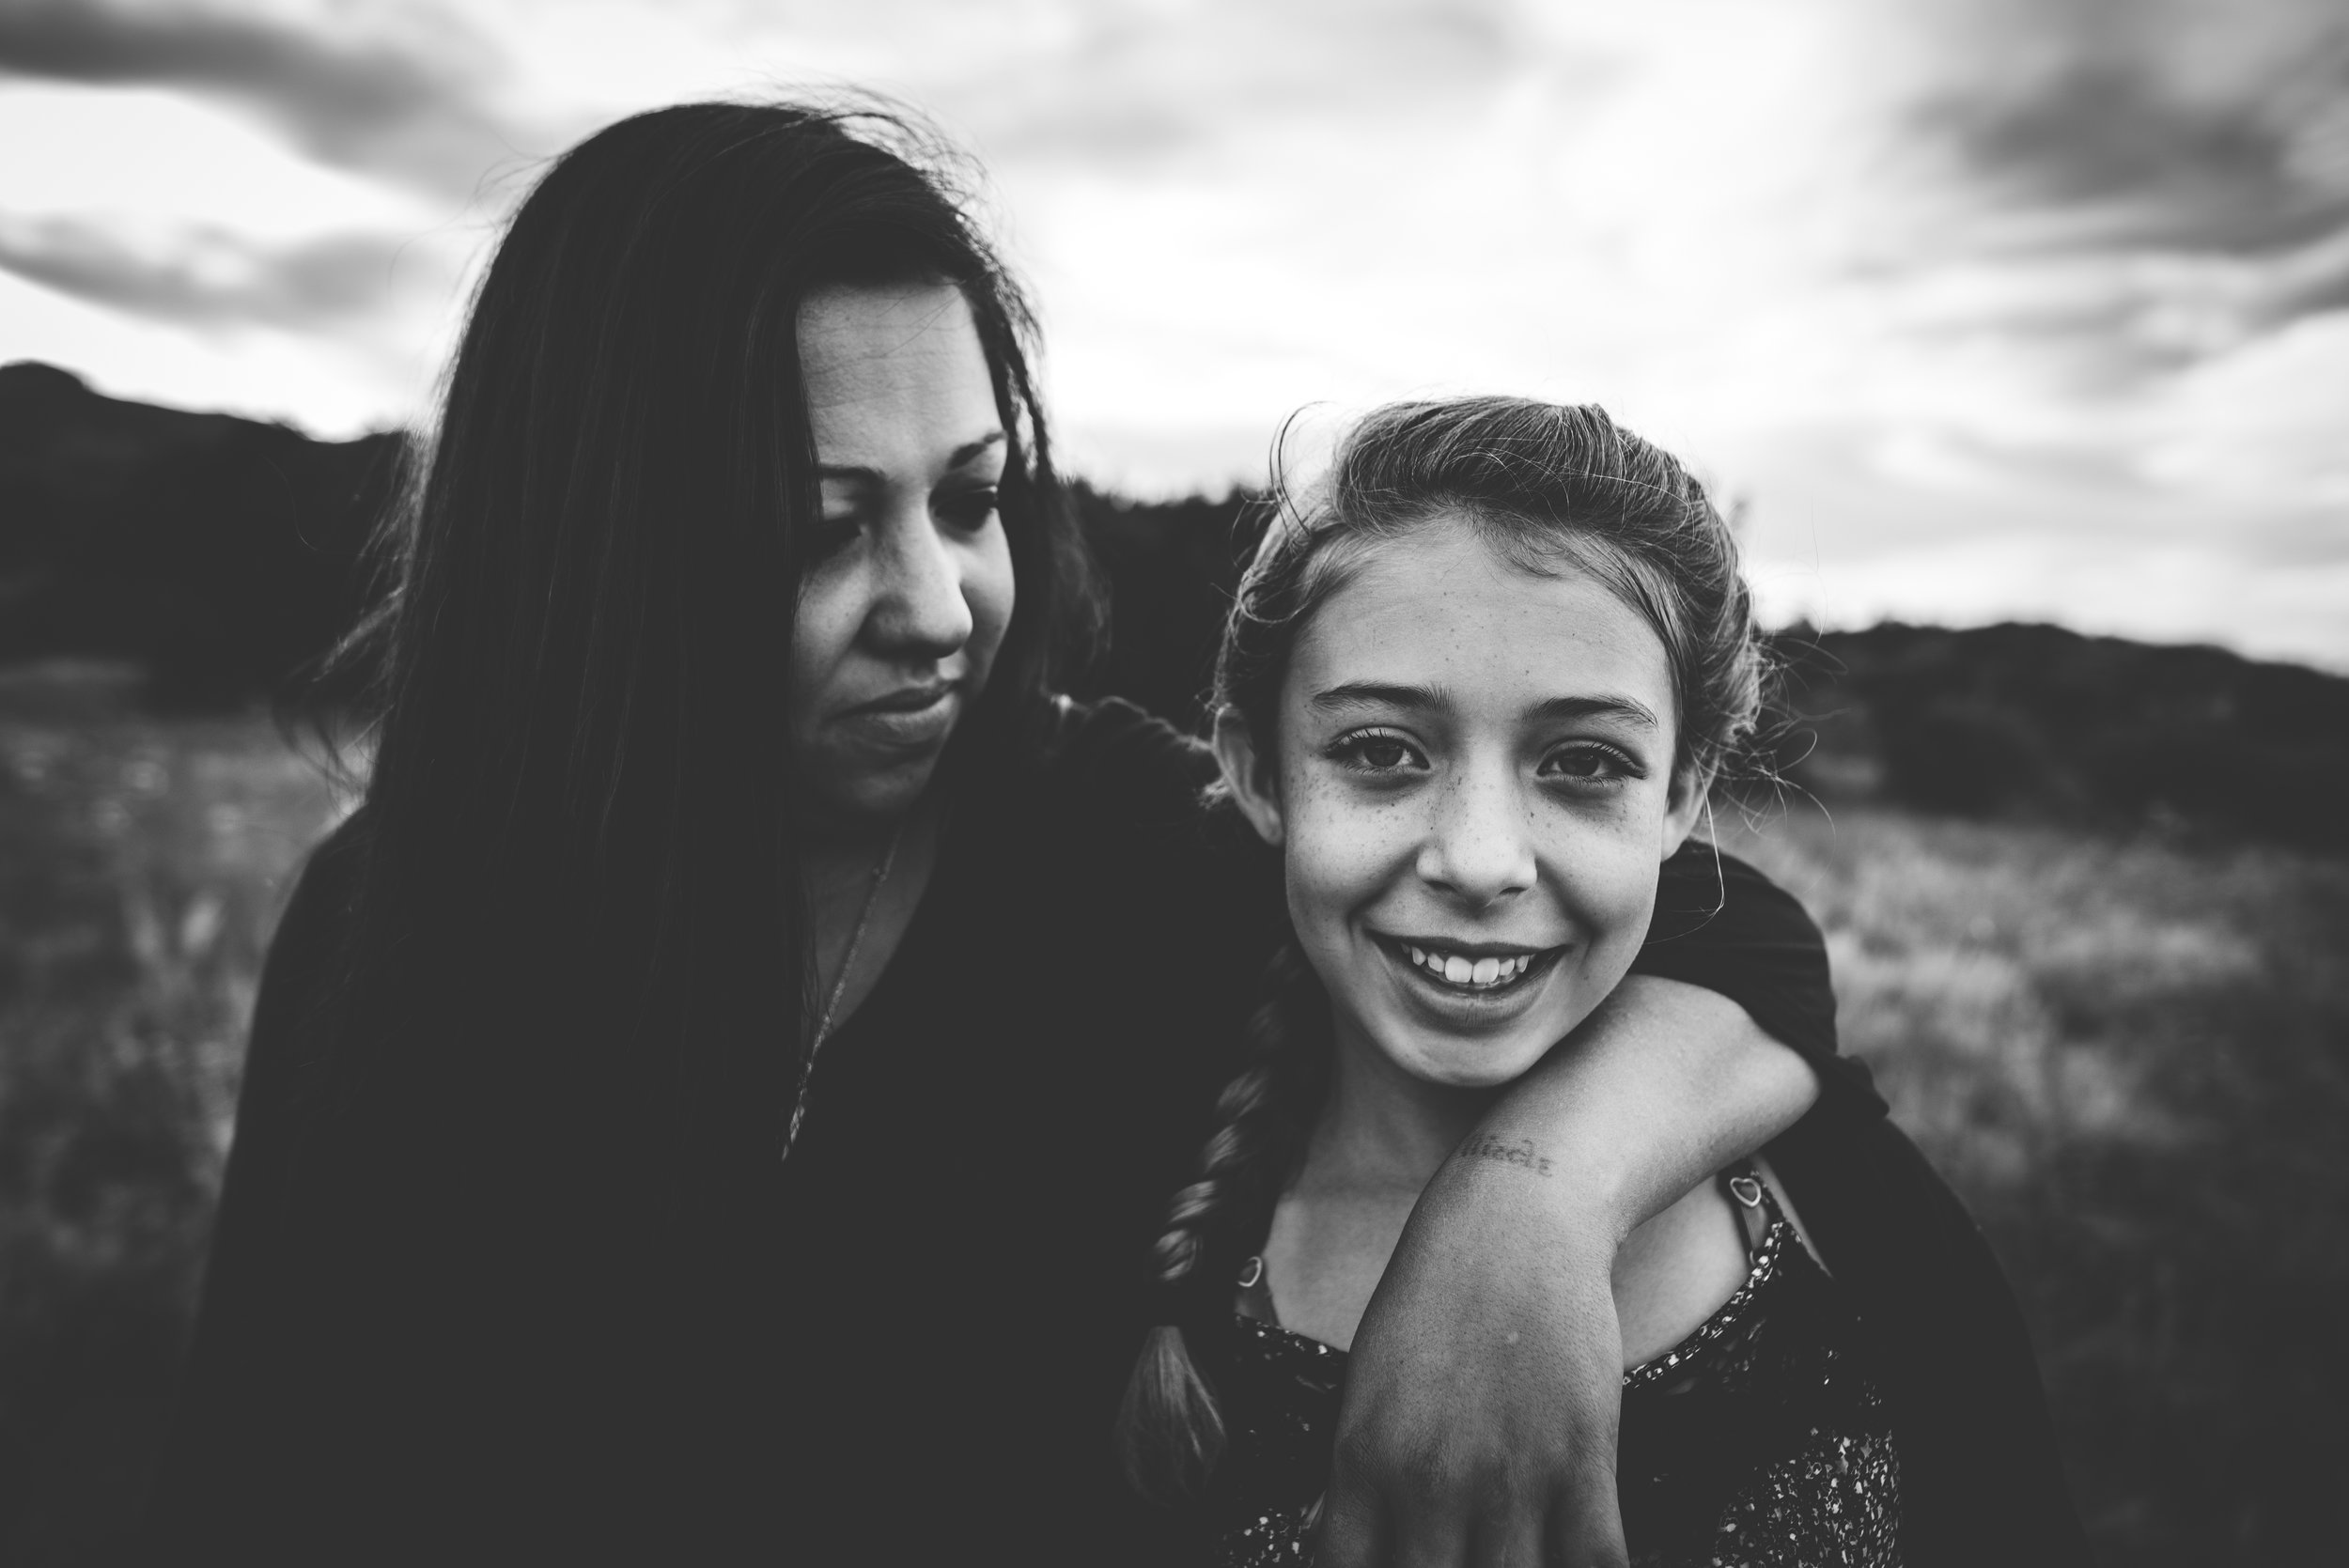 Mother and daughter embrace during family session in Colorado Springs mountains.